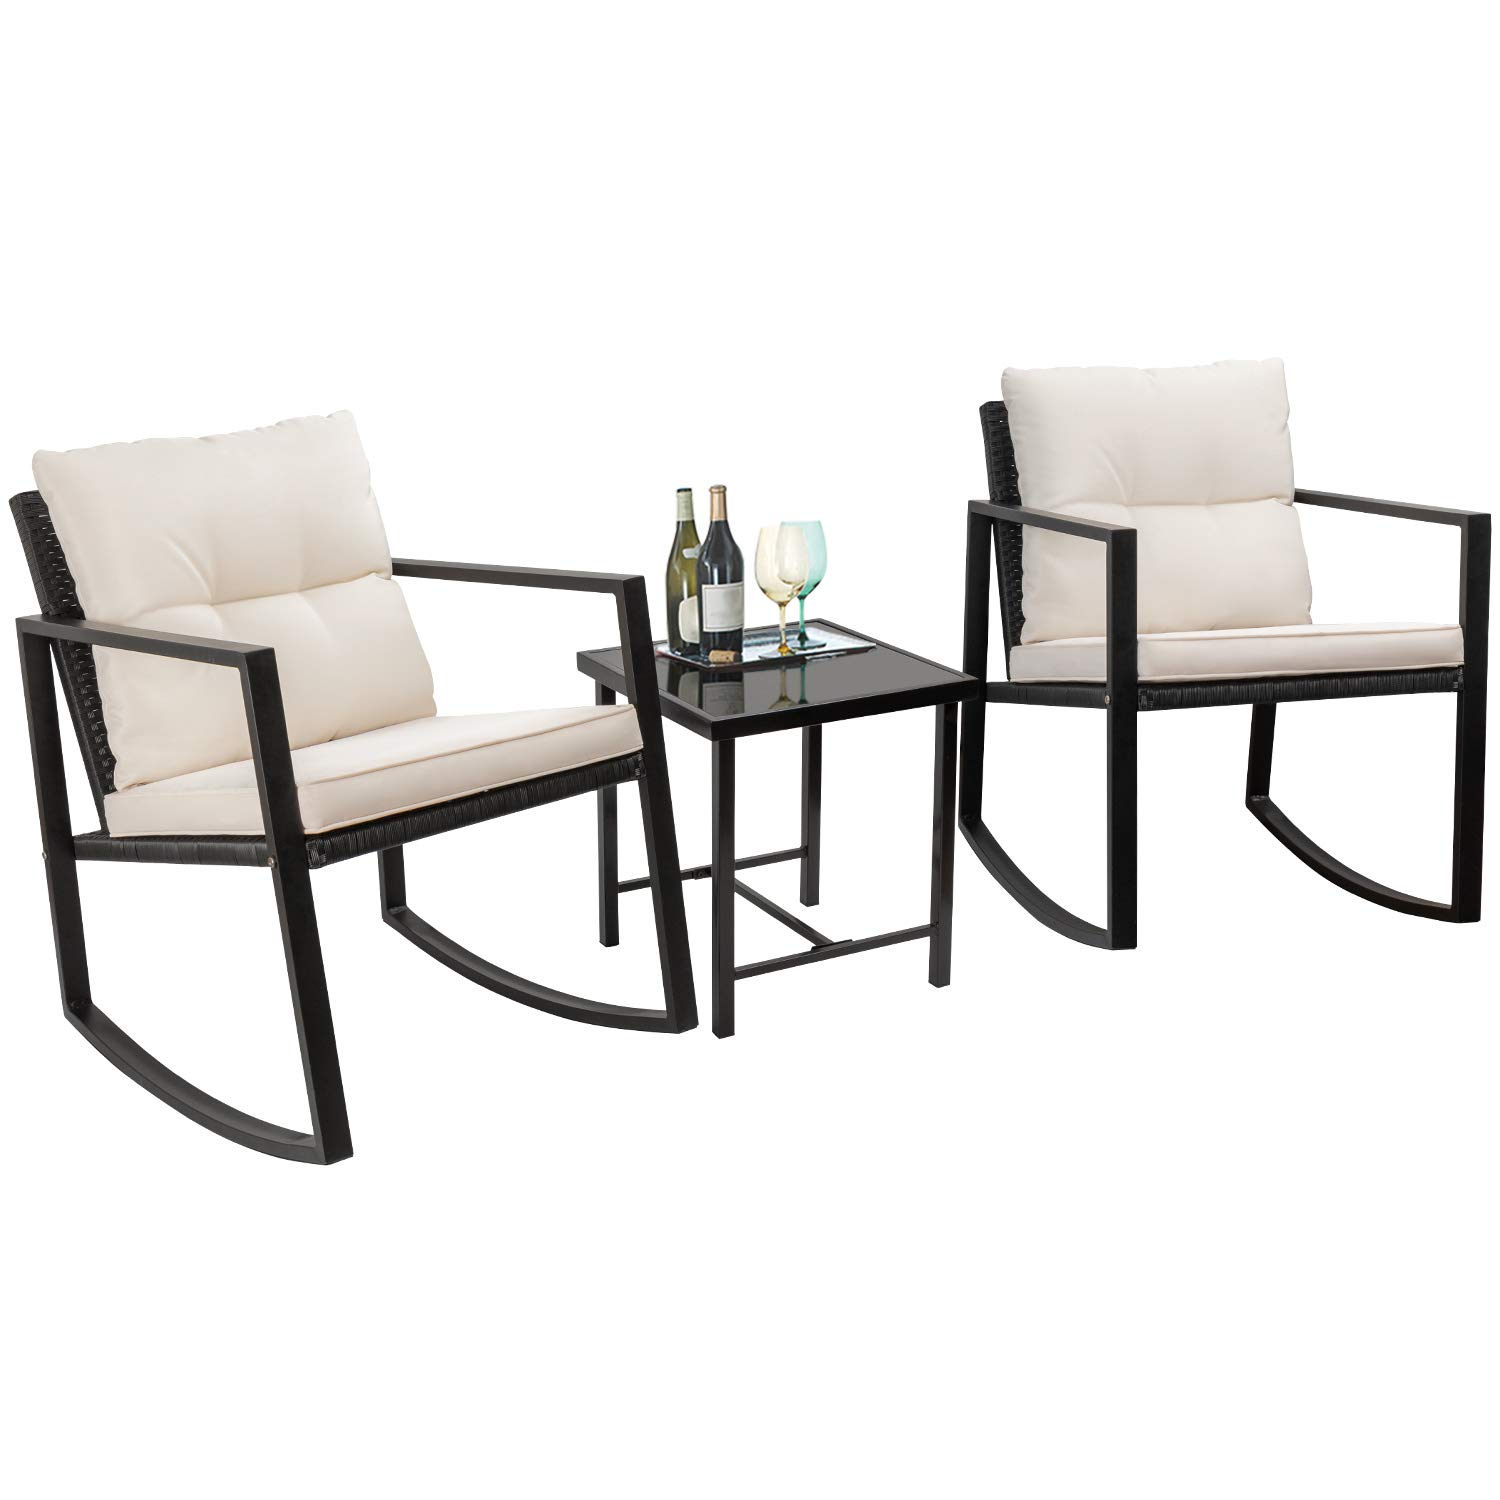 Etonnant Walnew 3 Pieces Patio Furniture Set Rocking Wicker Bistro Sets Modern  Outdoor Rocking Chair Furniture Sets Cushioned PE Rattan Chairs  Conversation ...